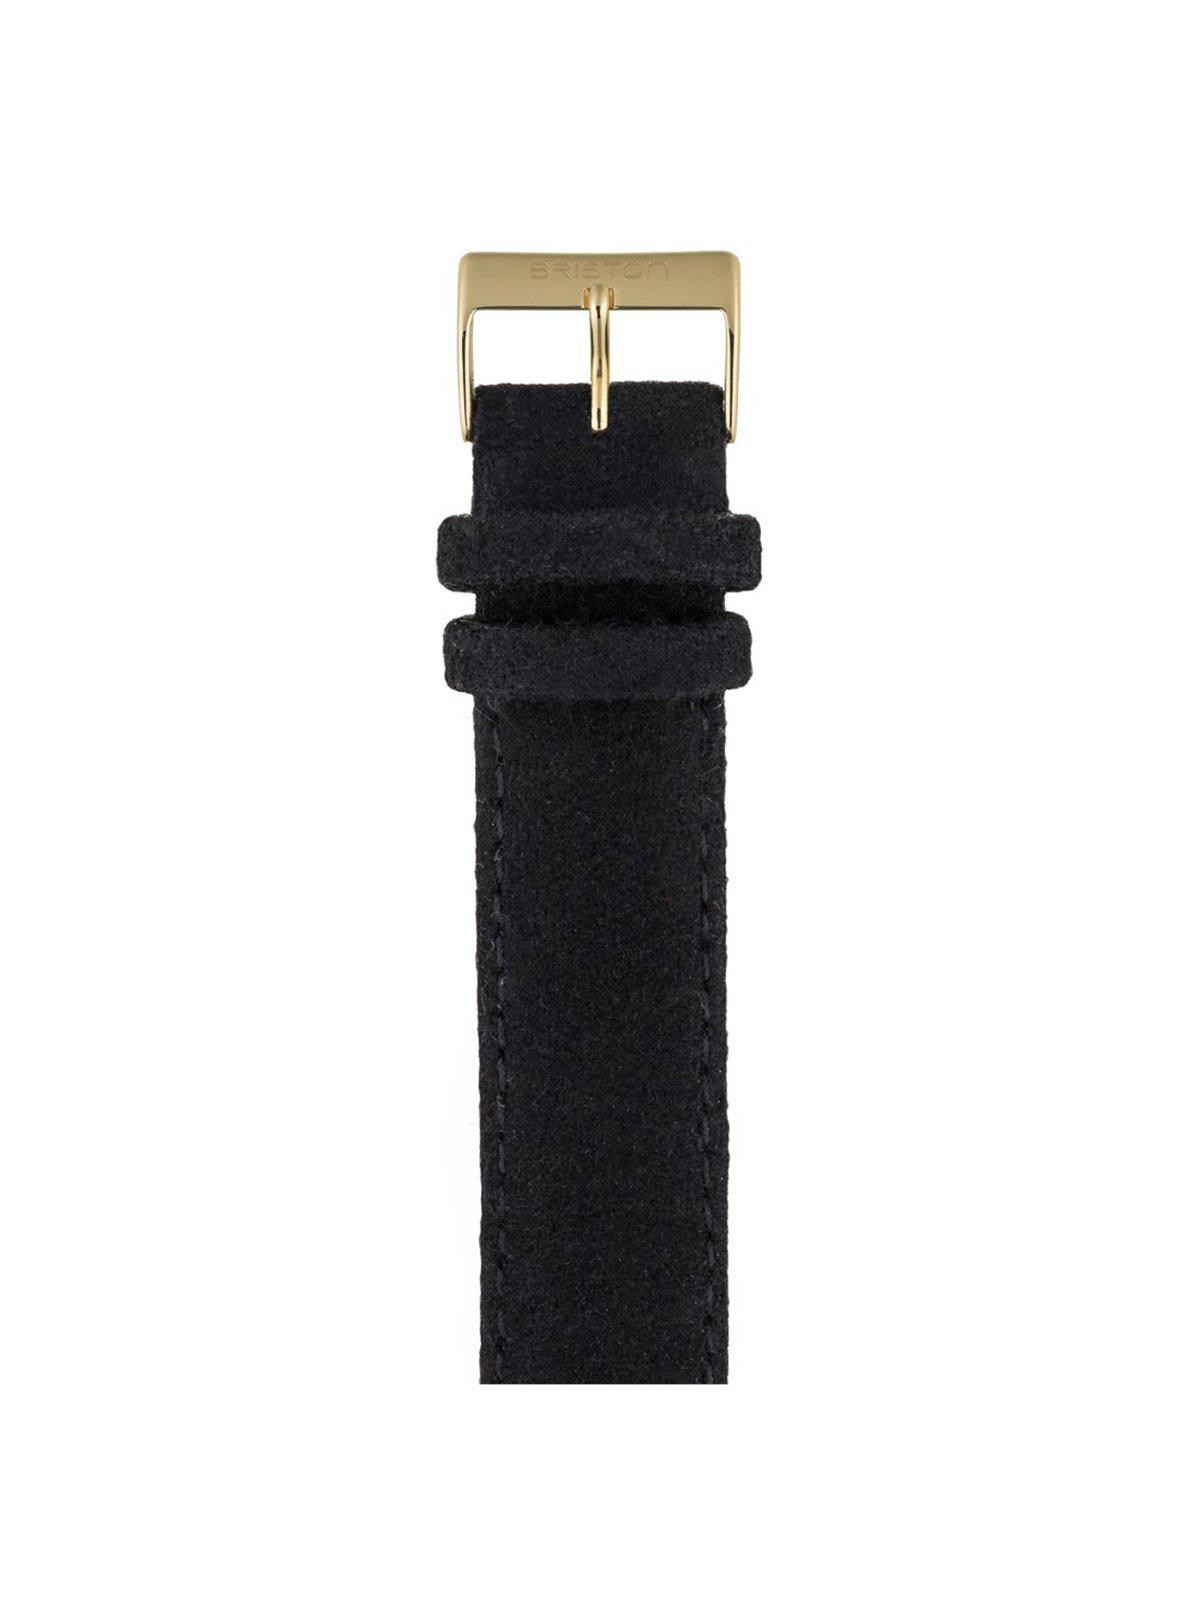 Briston Leather Flannel Strap Black Yellow Gold 20mm - MORE by Morello Indonesia